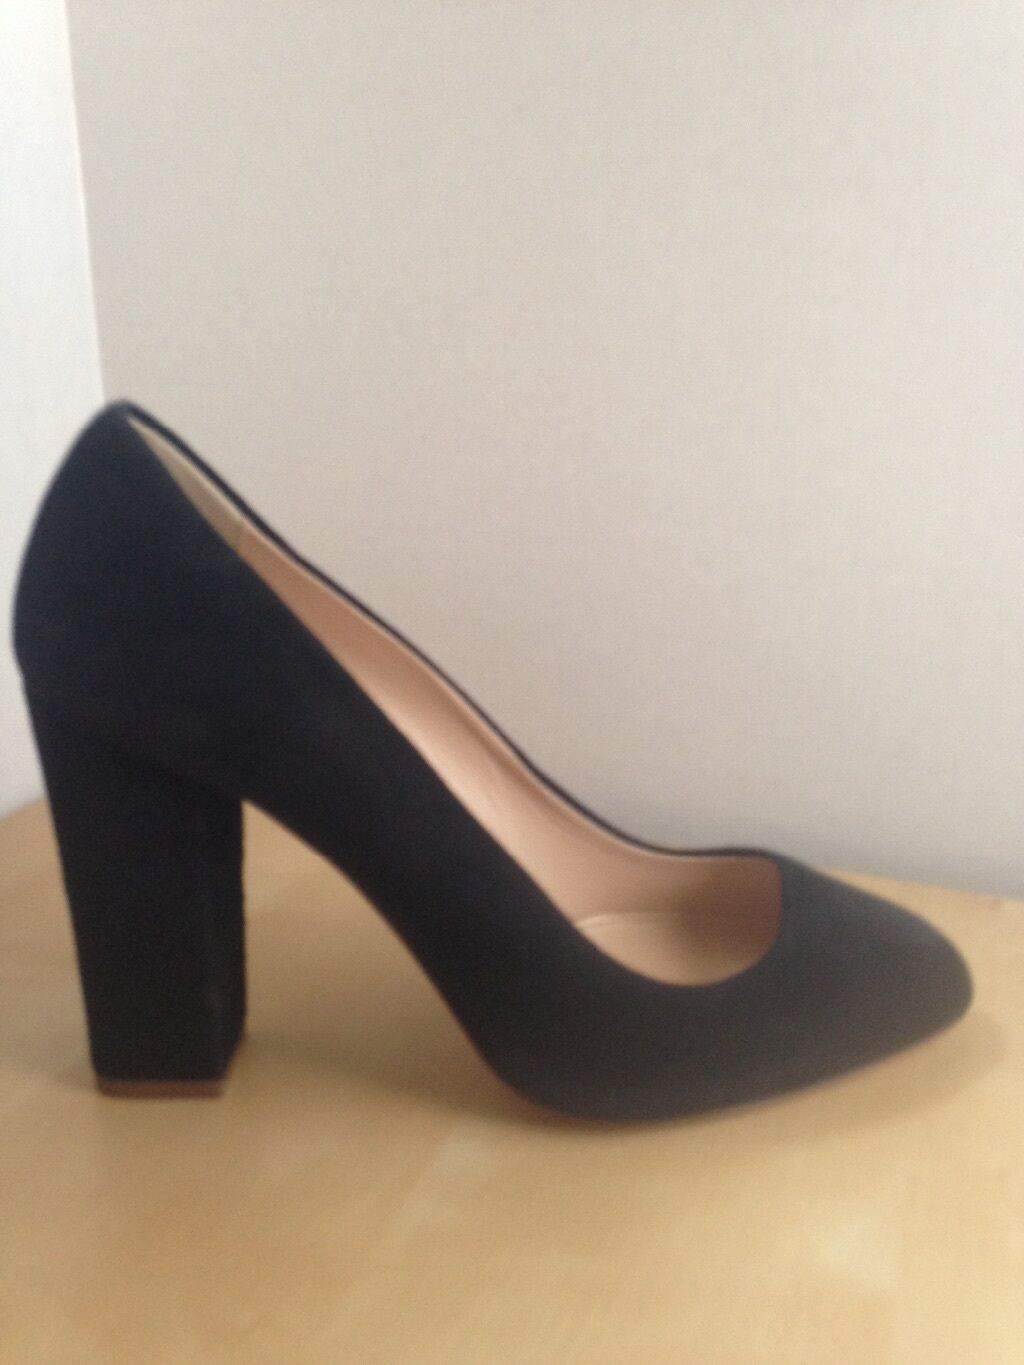 J. Crew Pumps Stella Pumps Crew Suede Size 9.5 New b51cc5